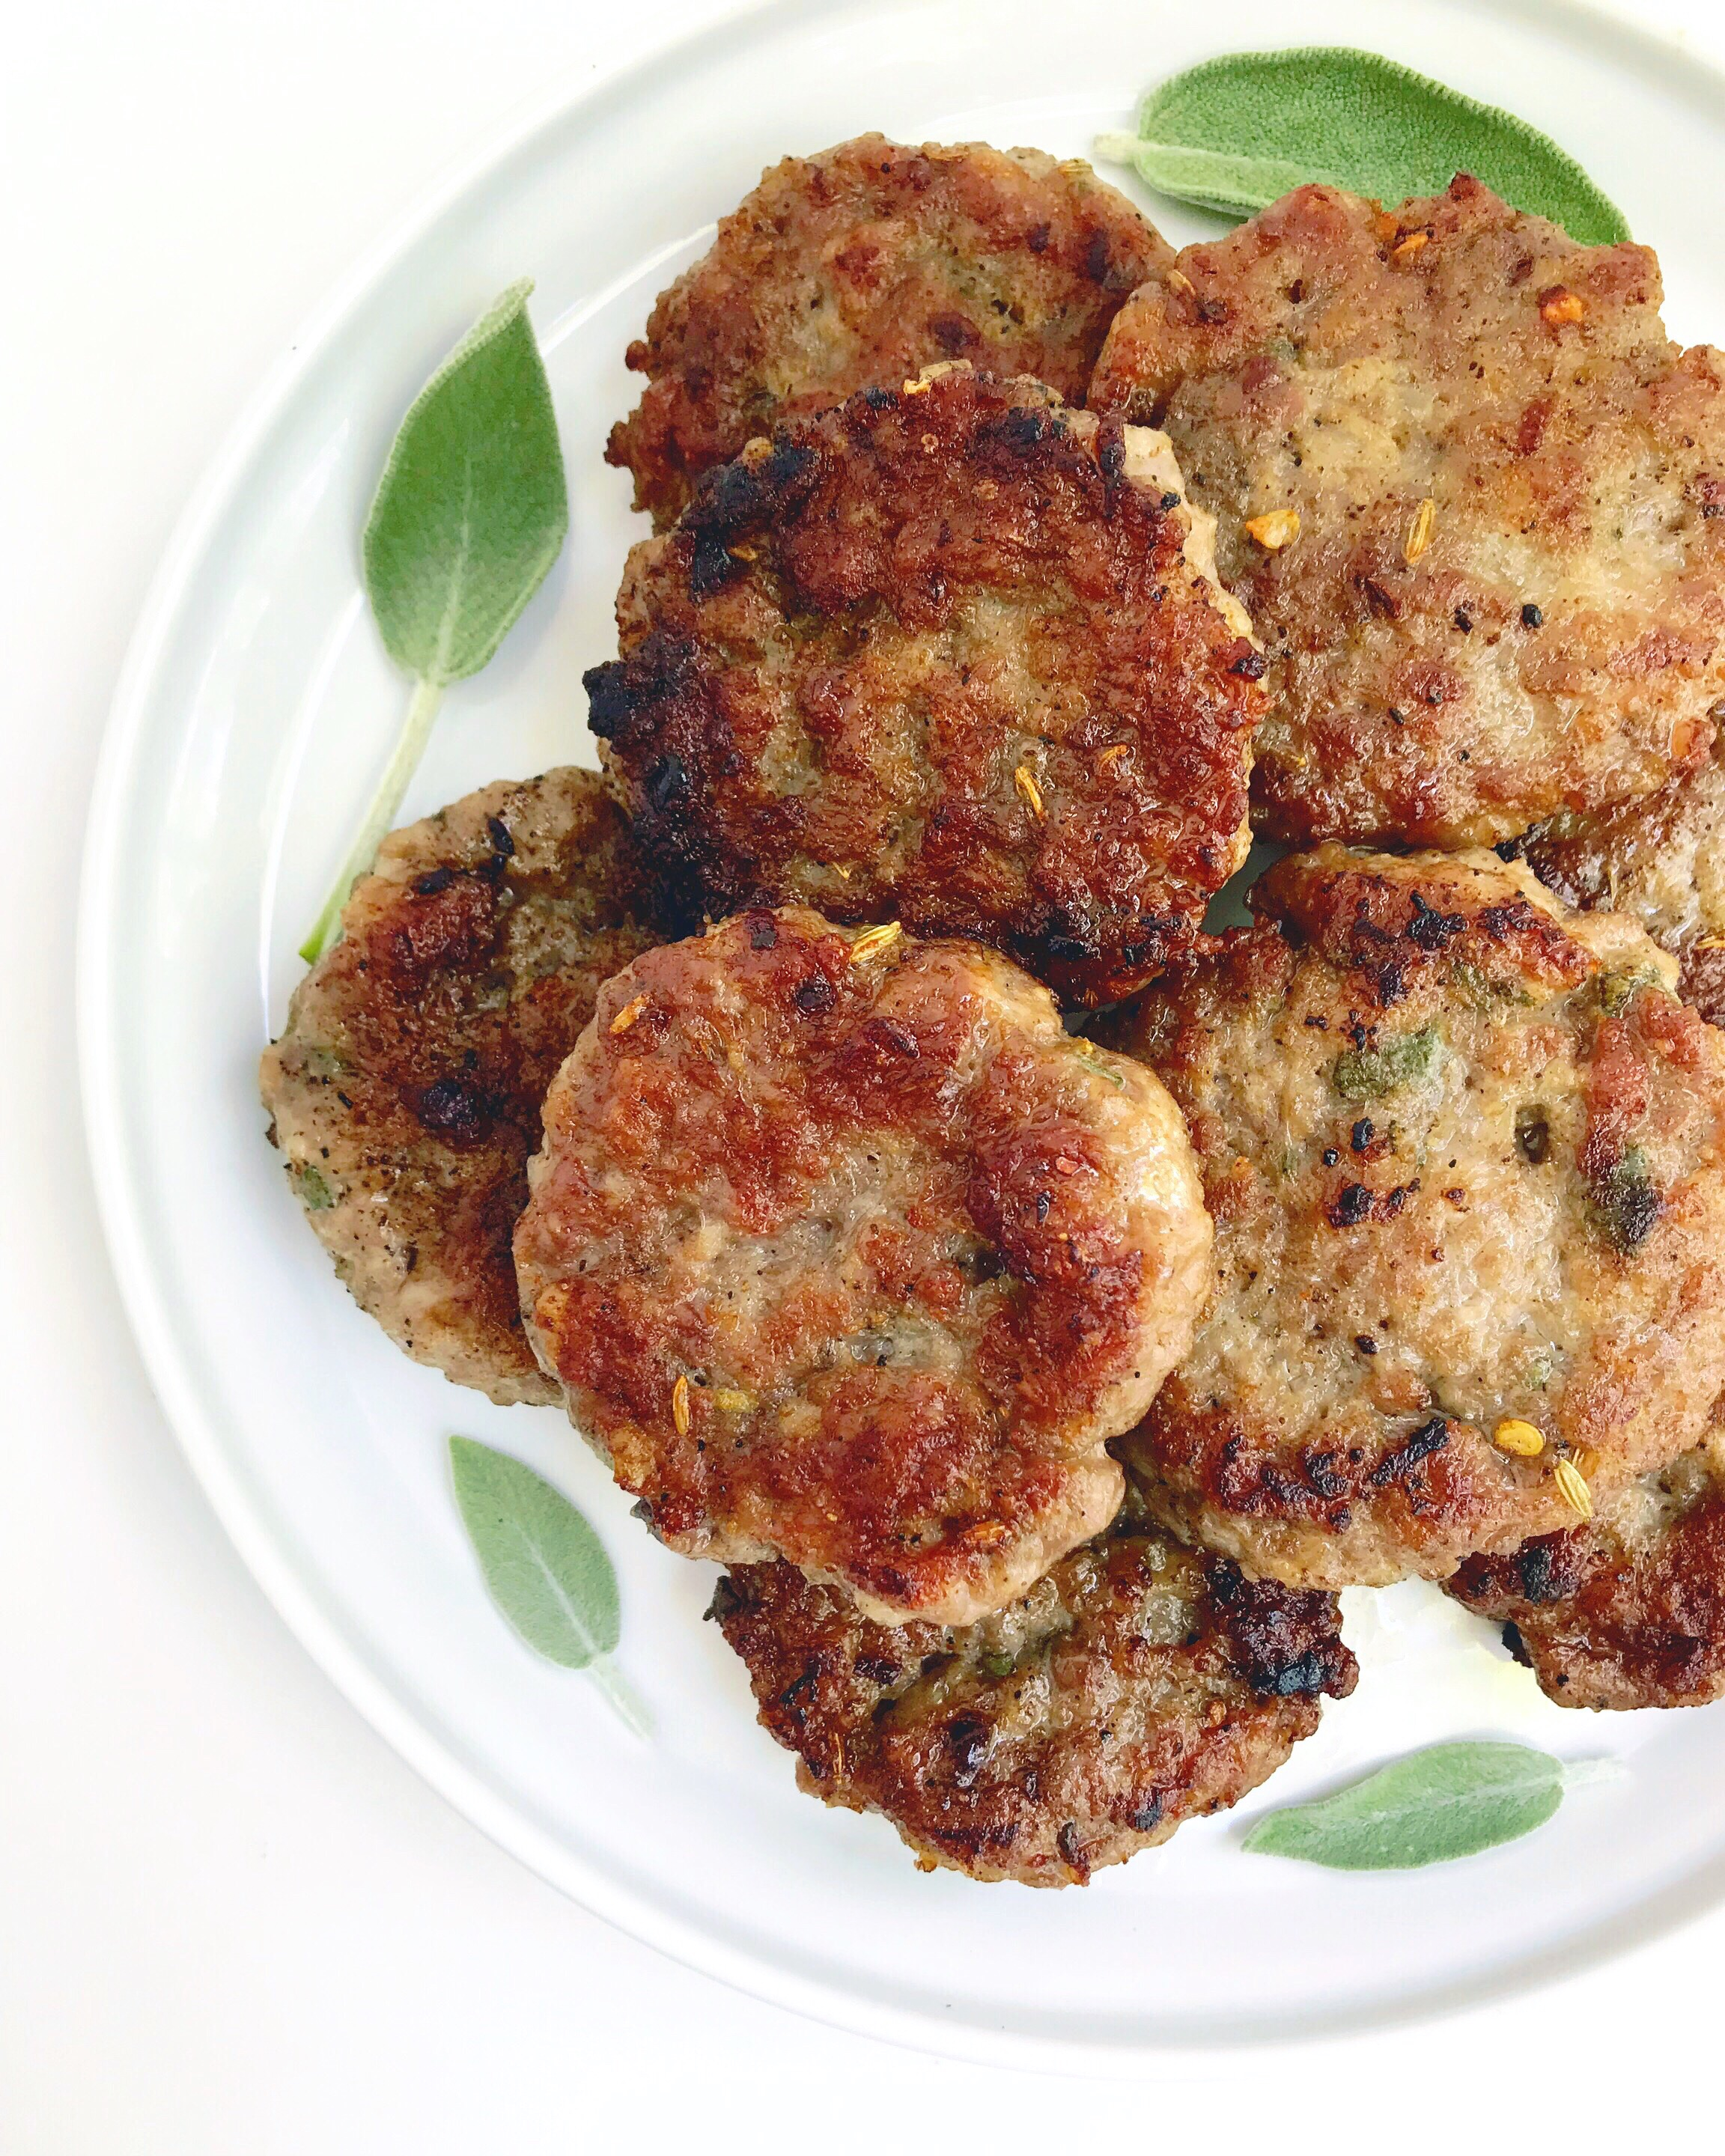 Plate of Maple Sage Breakfast Patties, garnished with fresh sage leaves.